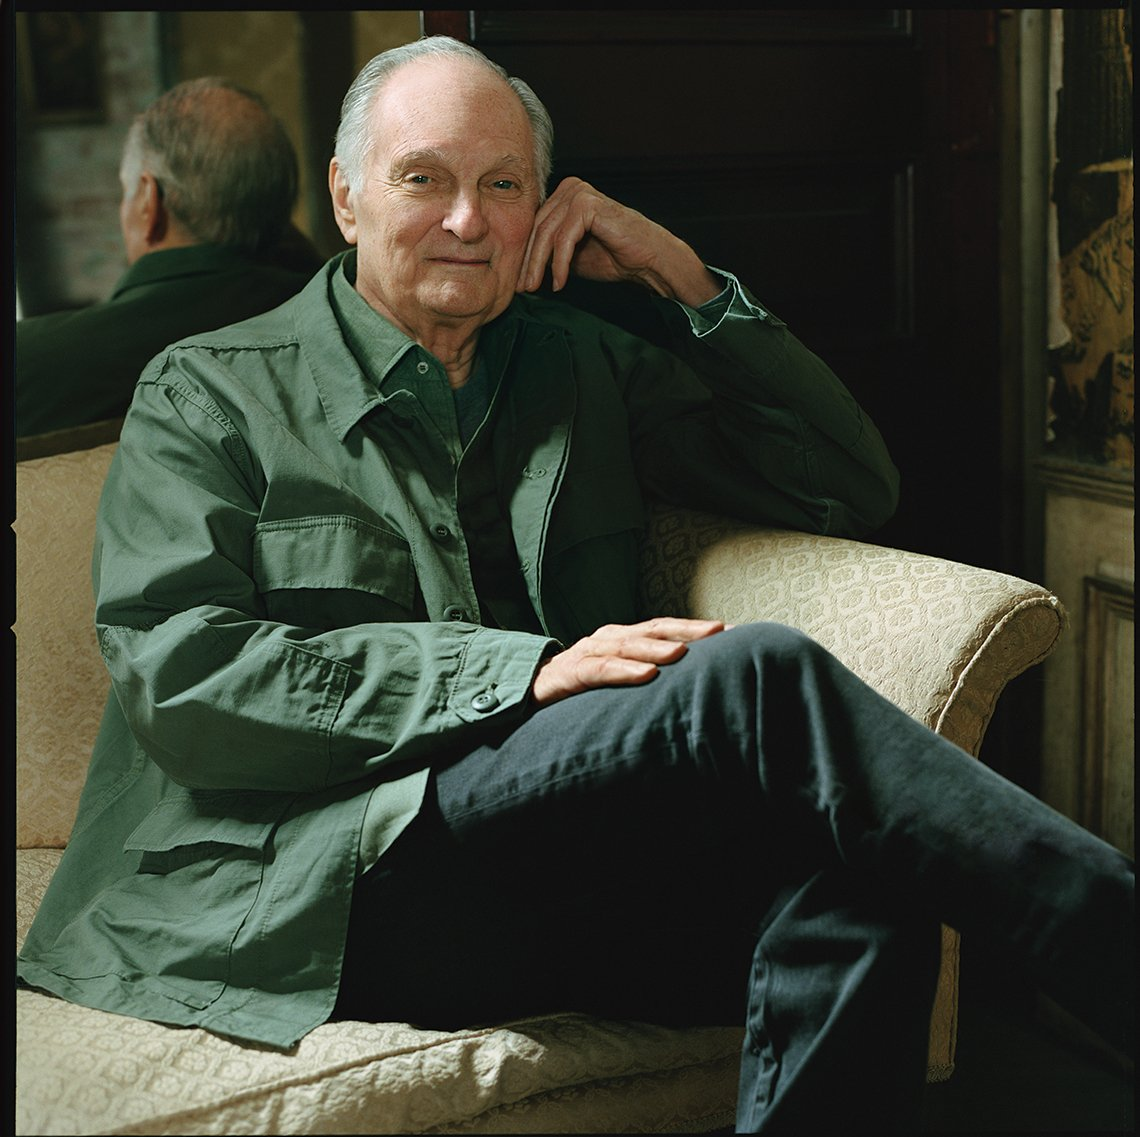 actor alan alda sits cross legged on a couch